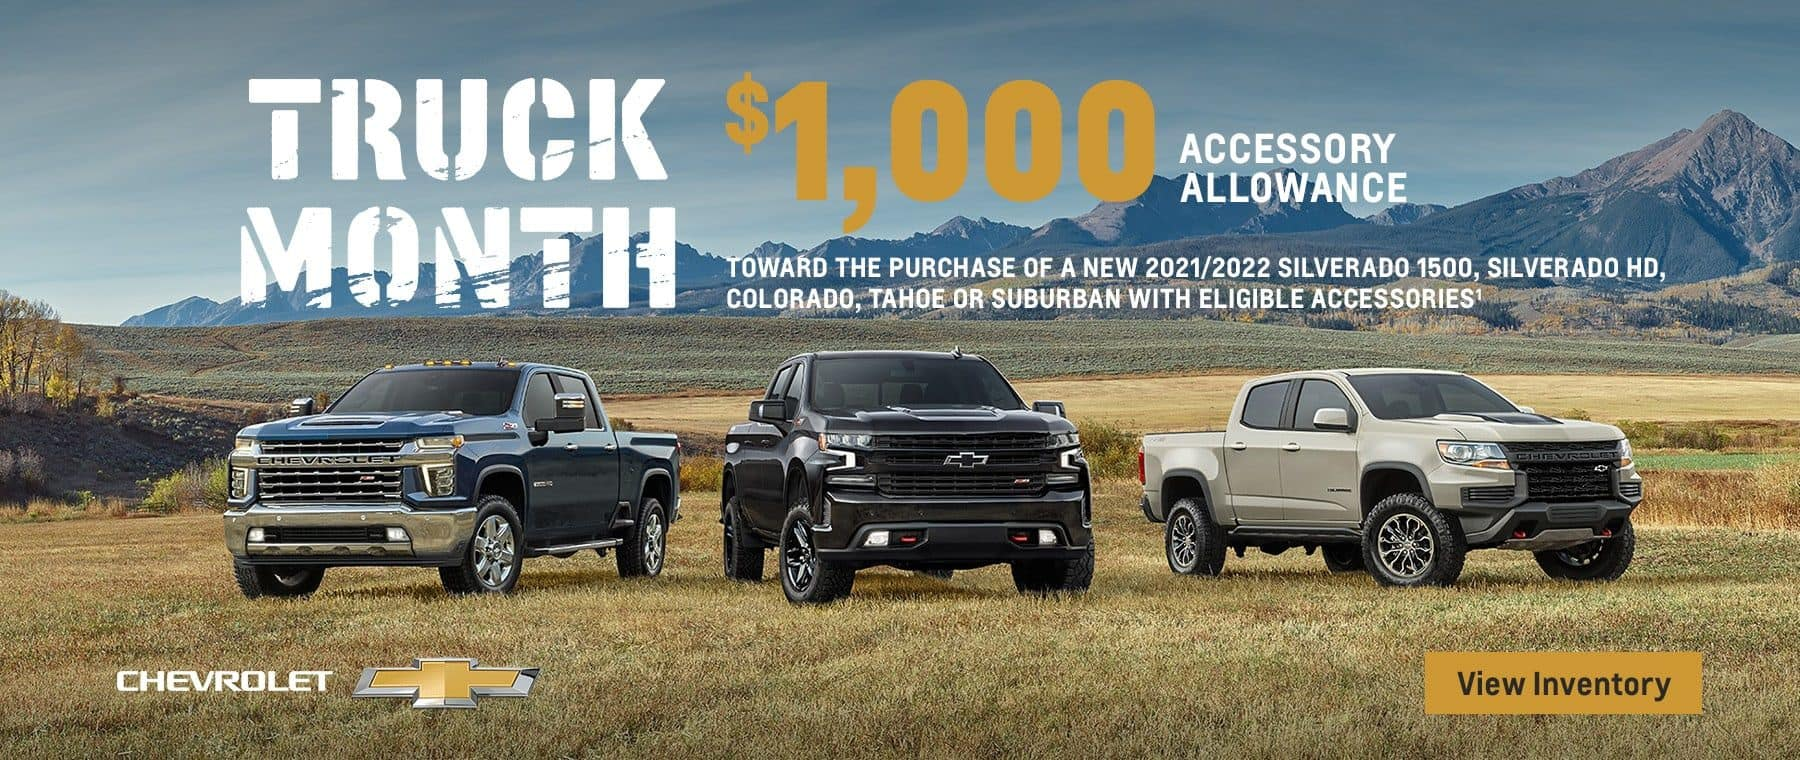 Chevy Truck Month. $1,000 accessory allowance toward the purchase of a new 2021/2022 Silverado 1500, Silverado HD, Colorado, Tahoe or Suburban with eligible accessories.